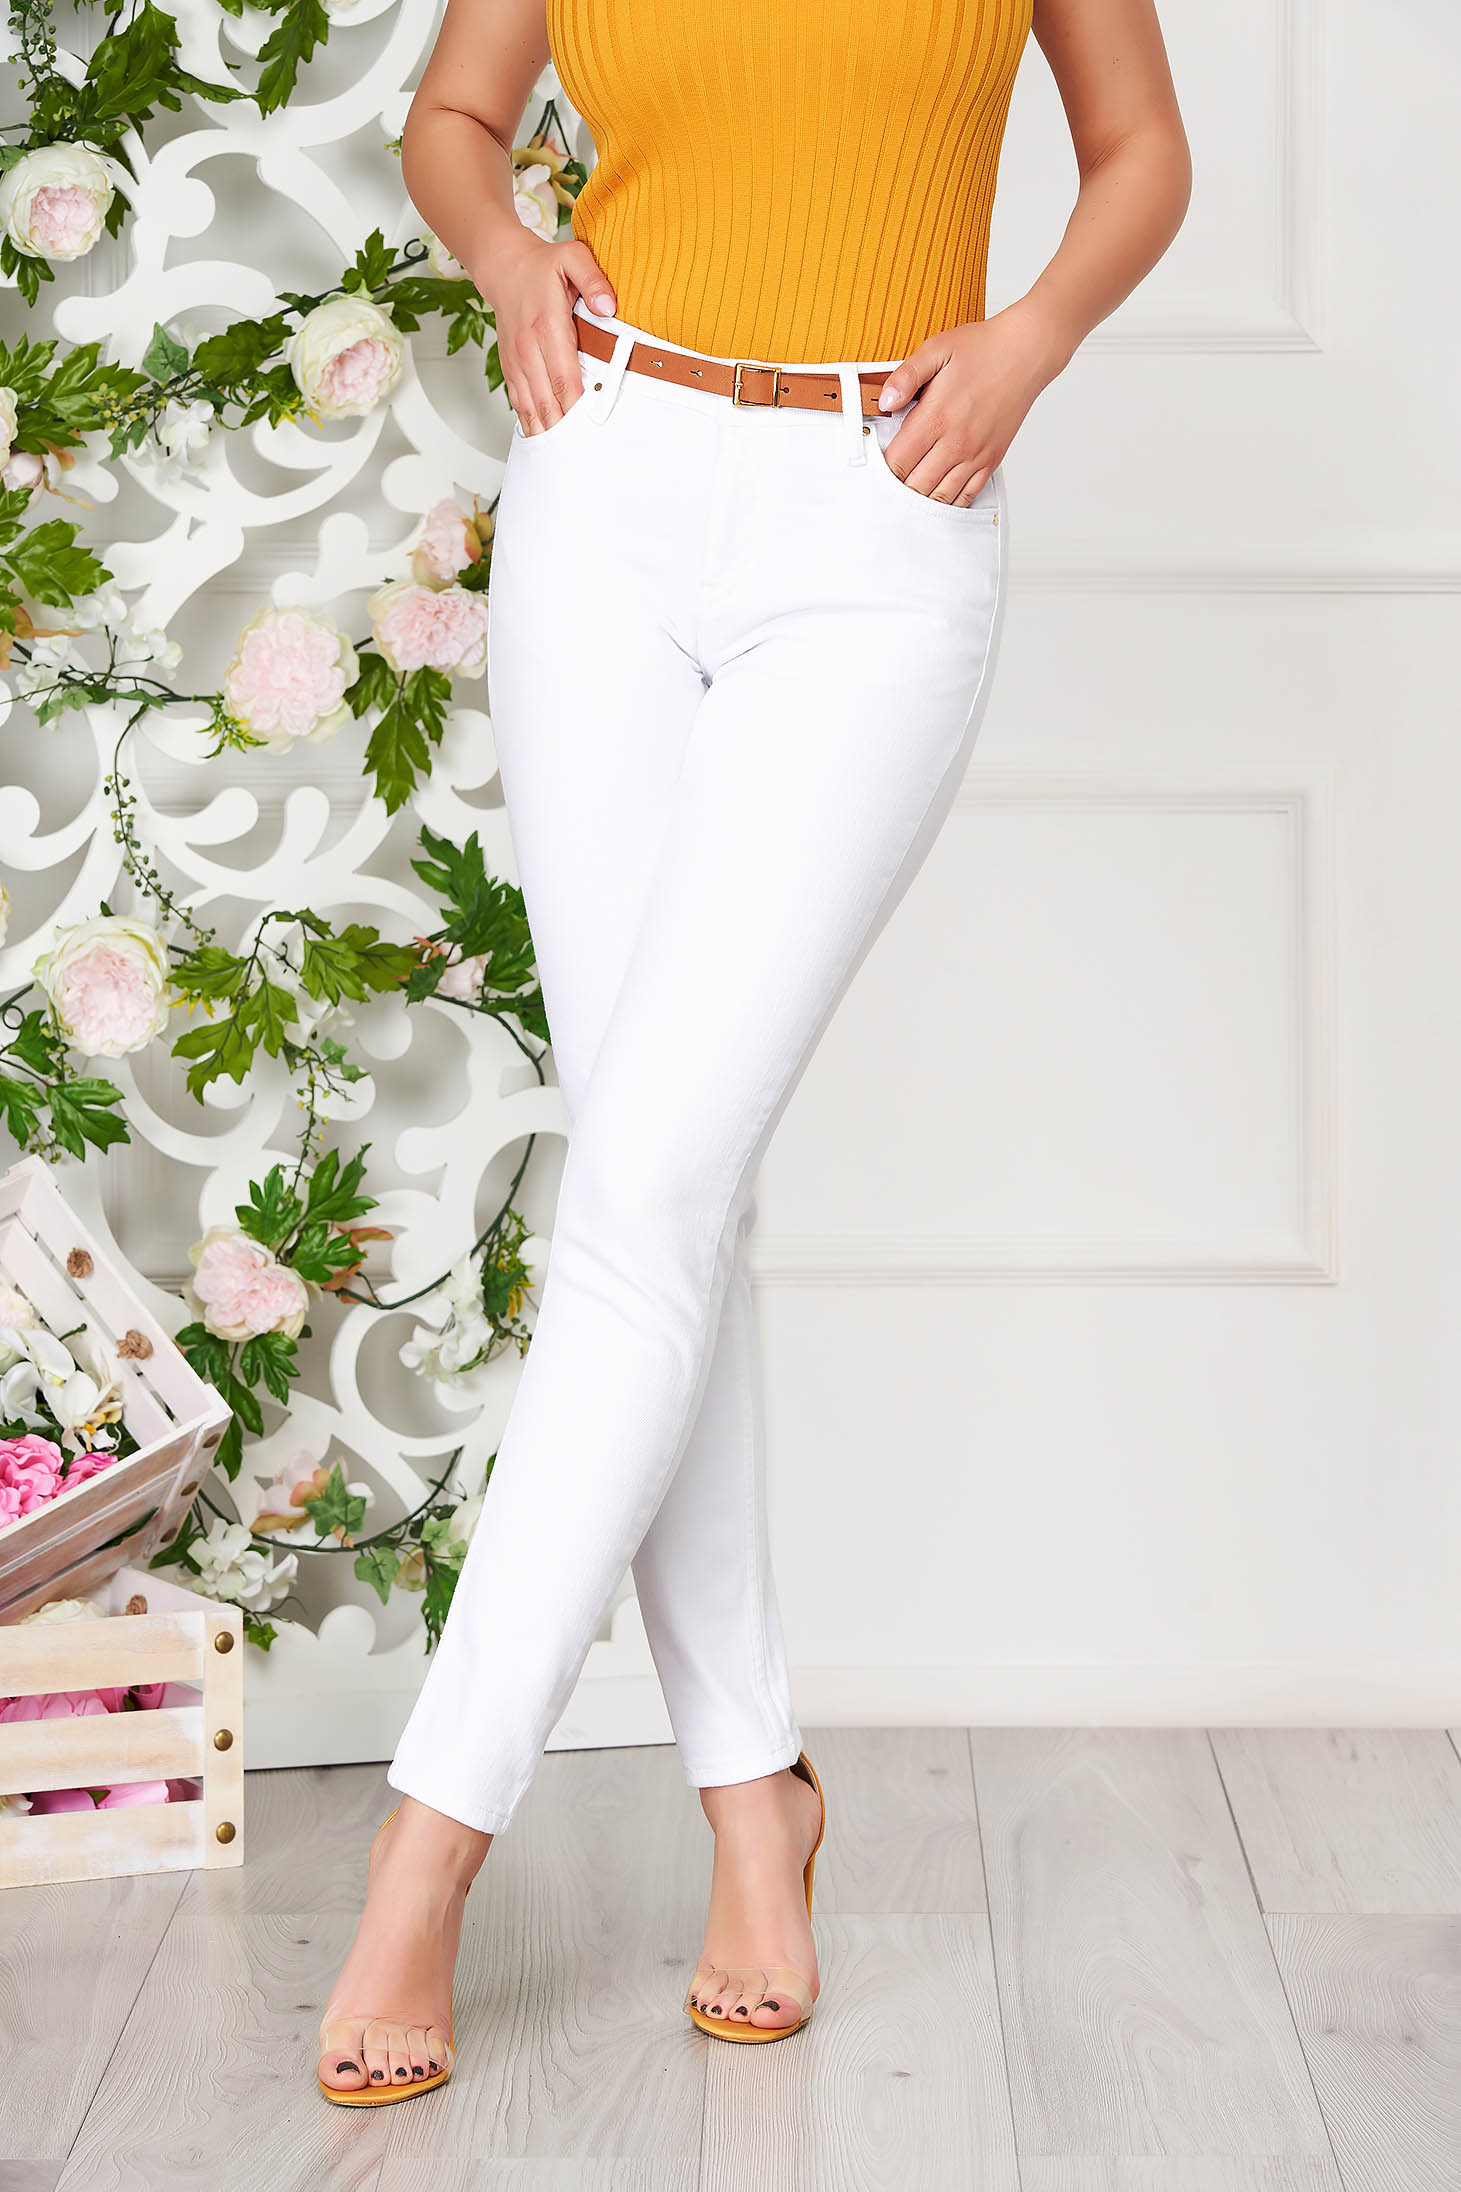 White trousers casual denim with pockets conical accessorized with belt